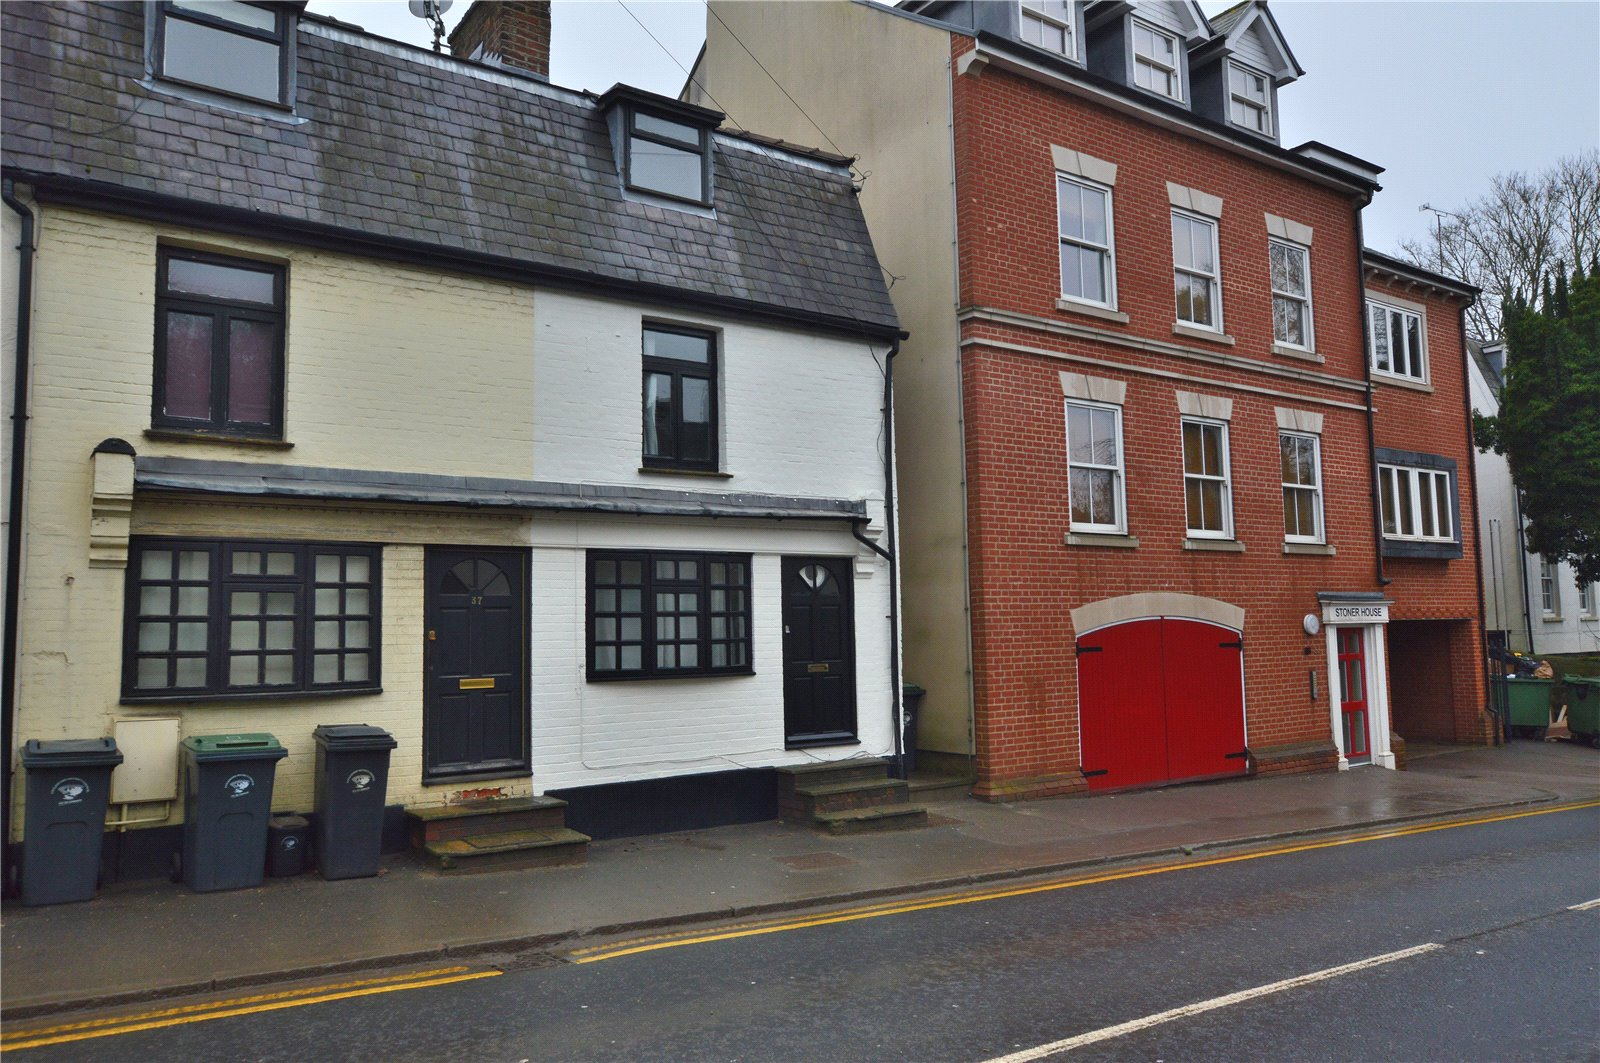 2 Bedrooms End Of Terrace House for sale in Stansted